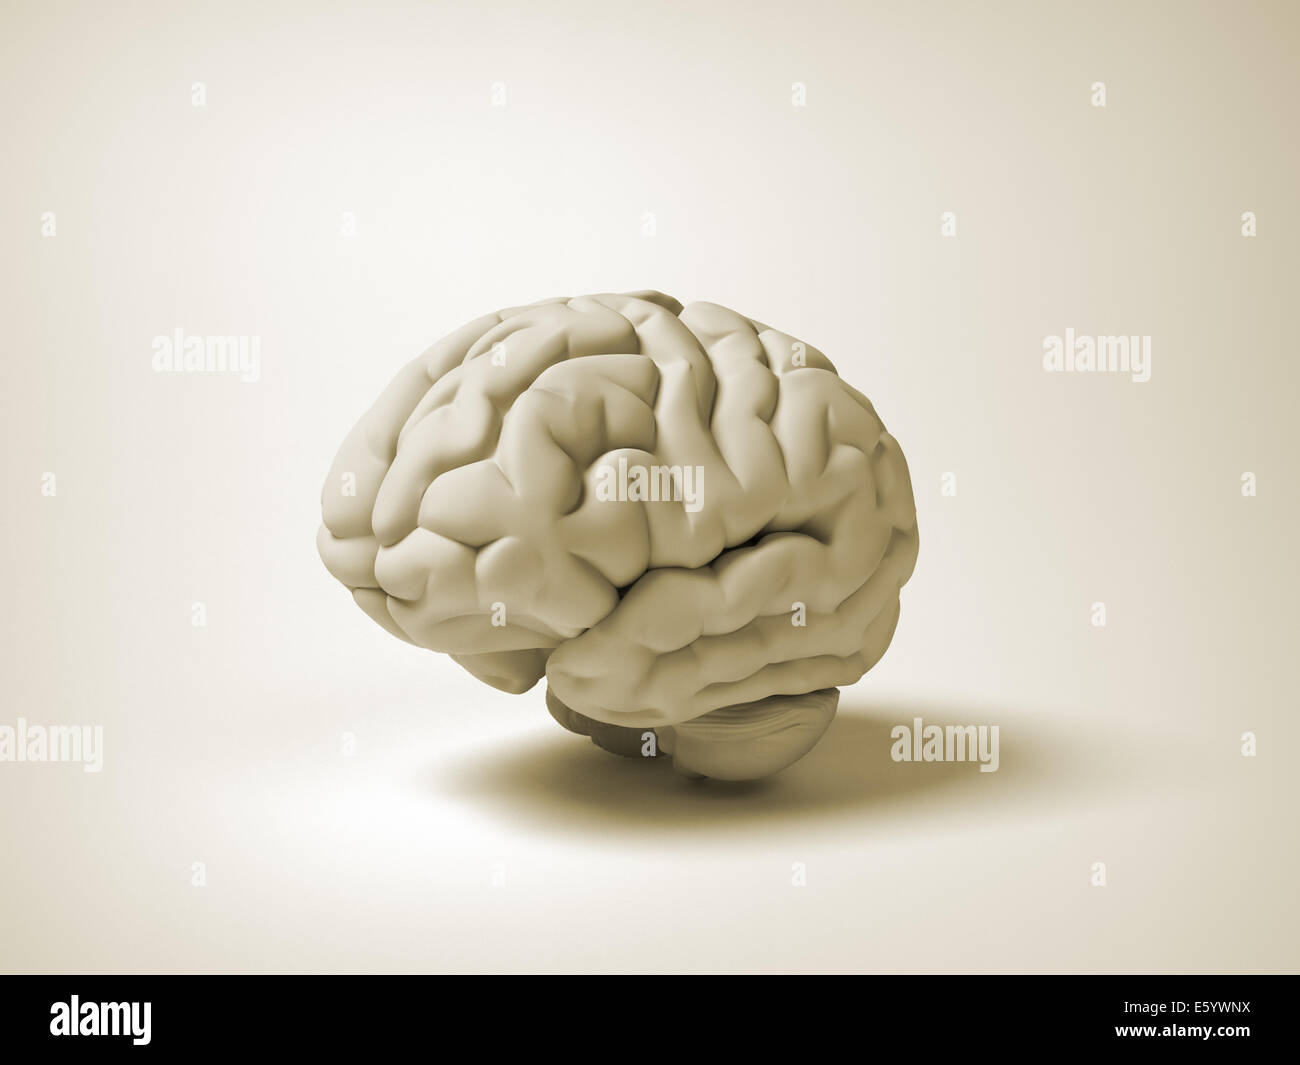 Cerveau humain conceptuel - illustration 3D render Photo Stock